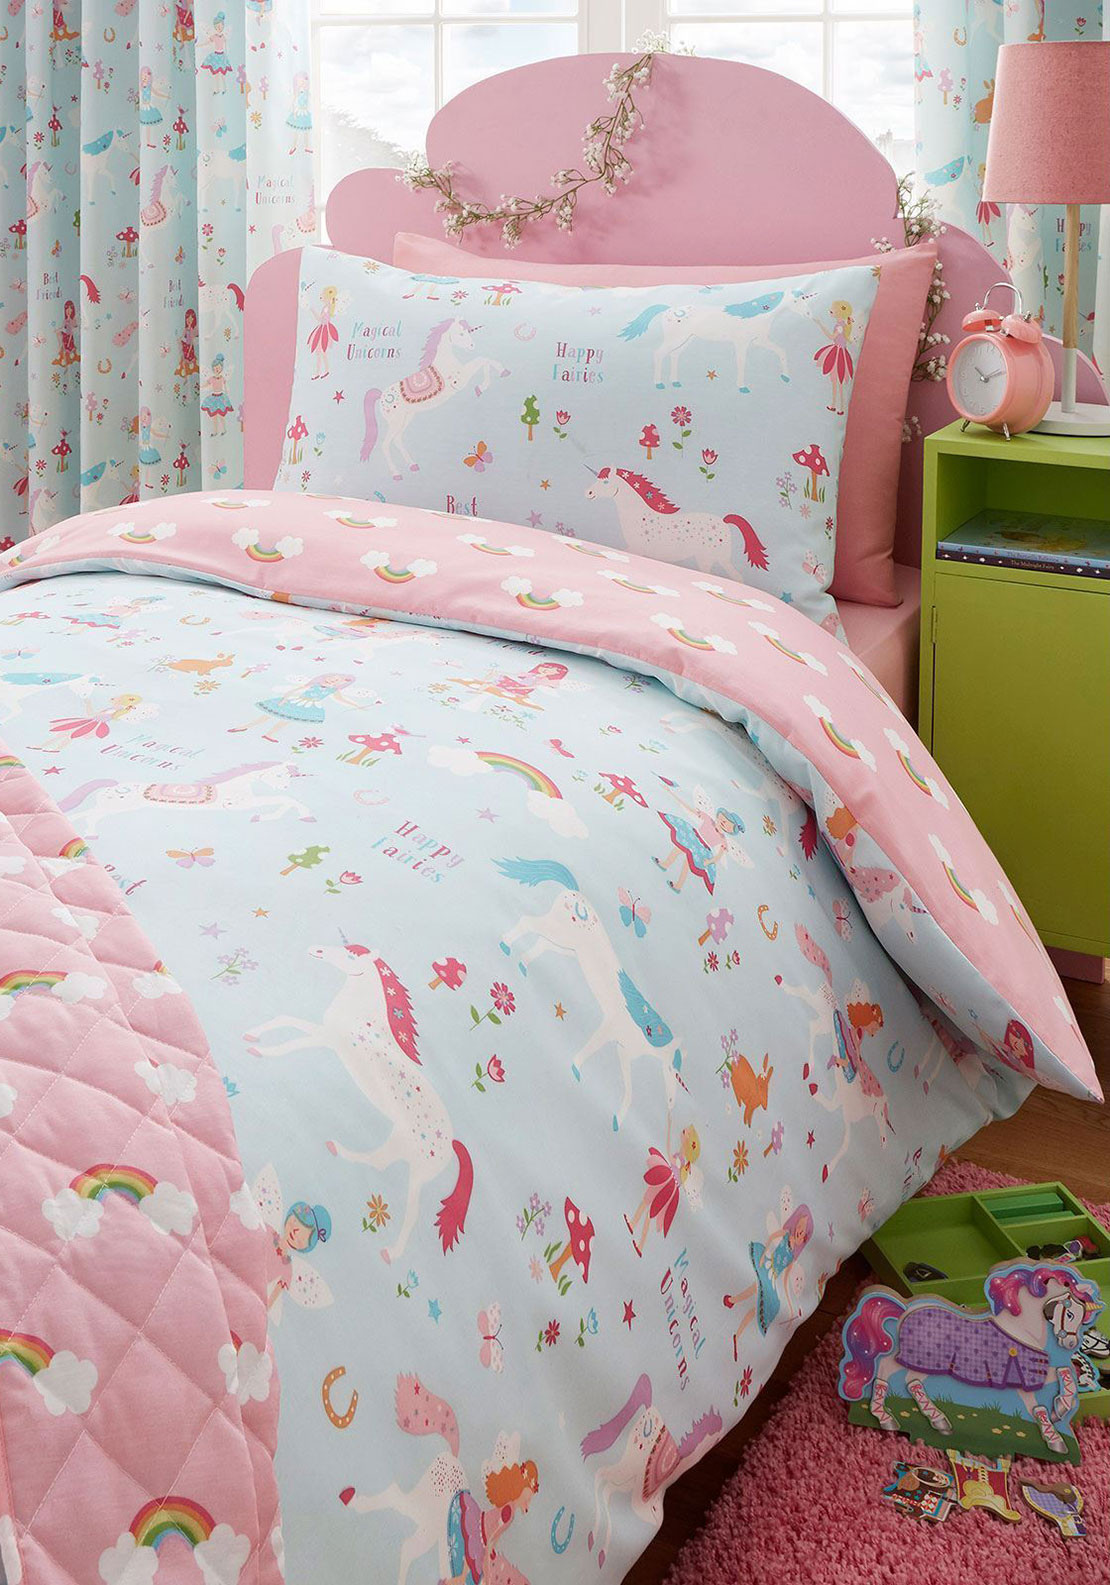 Kids Club Magical Unicorns Duvet Cover Set